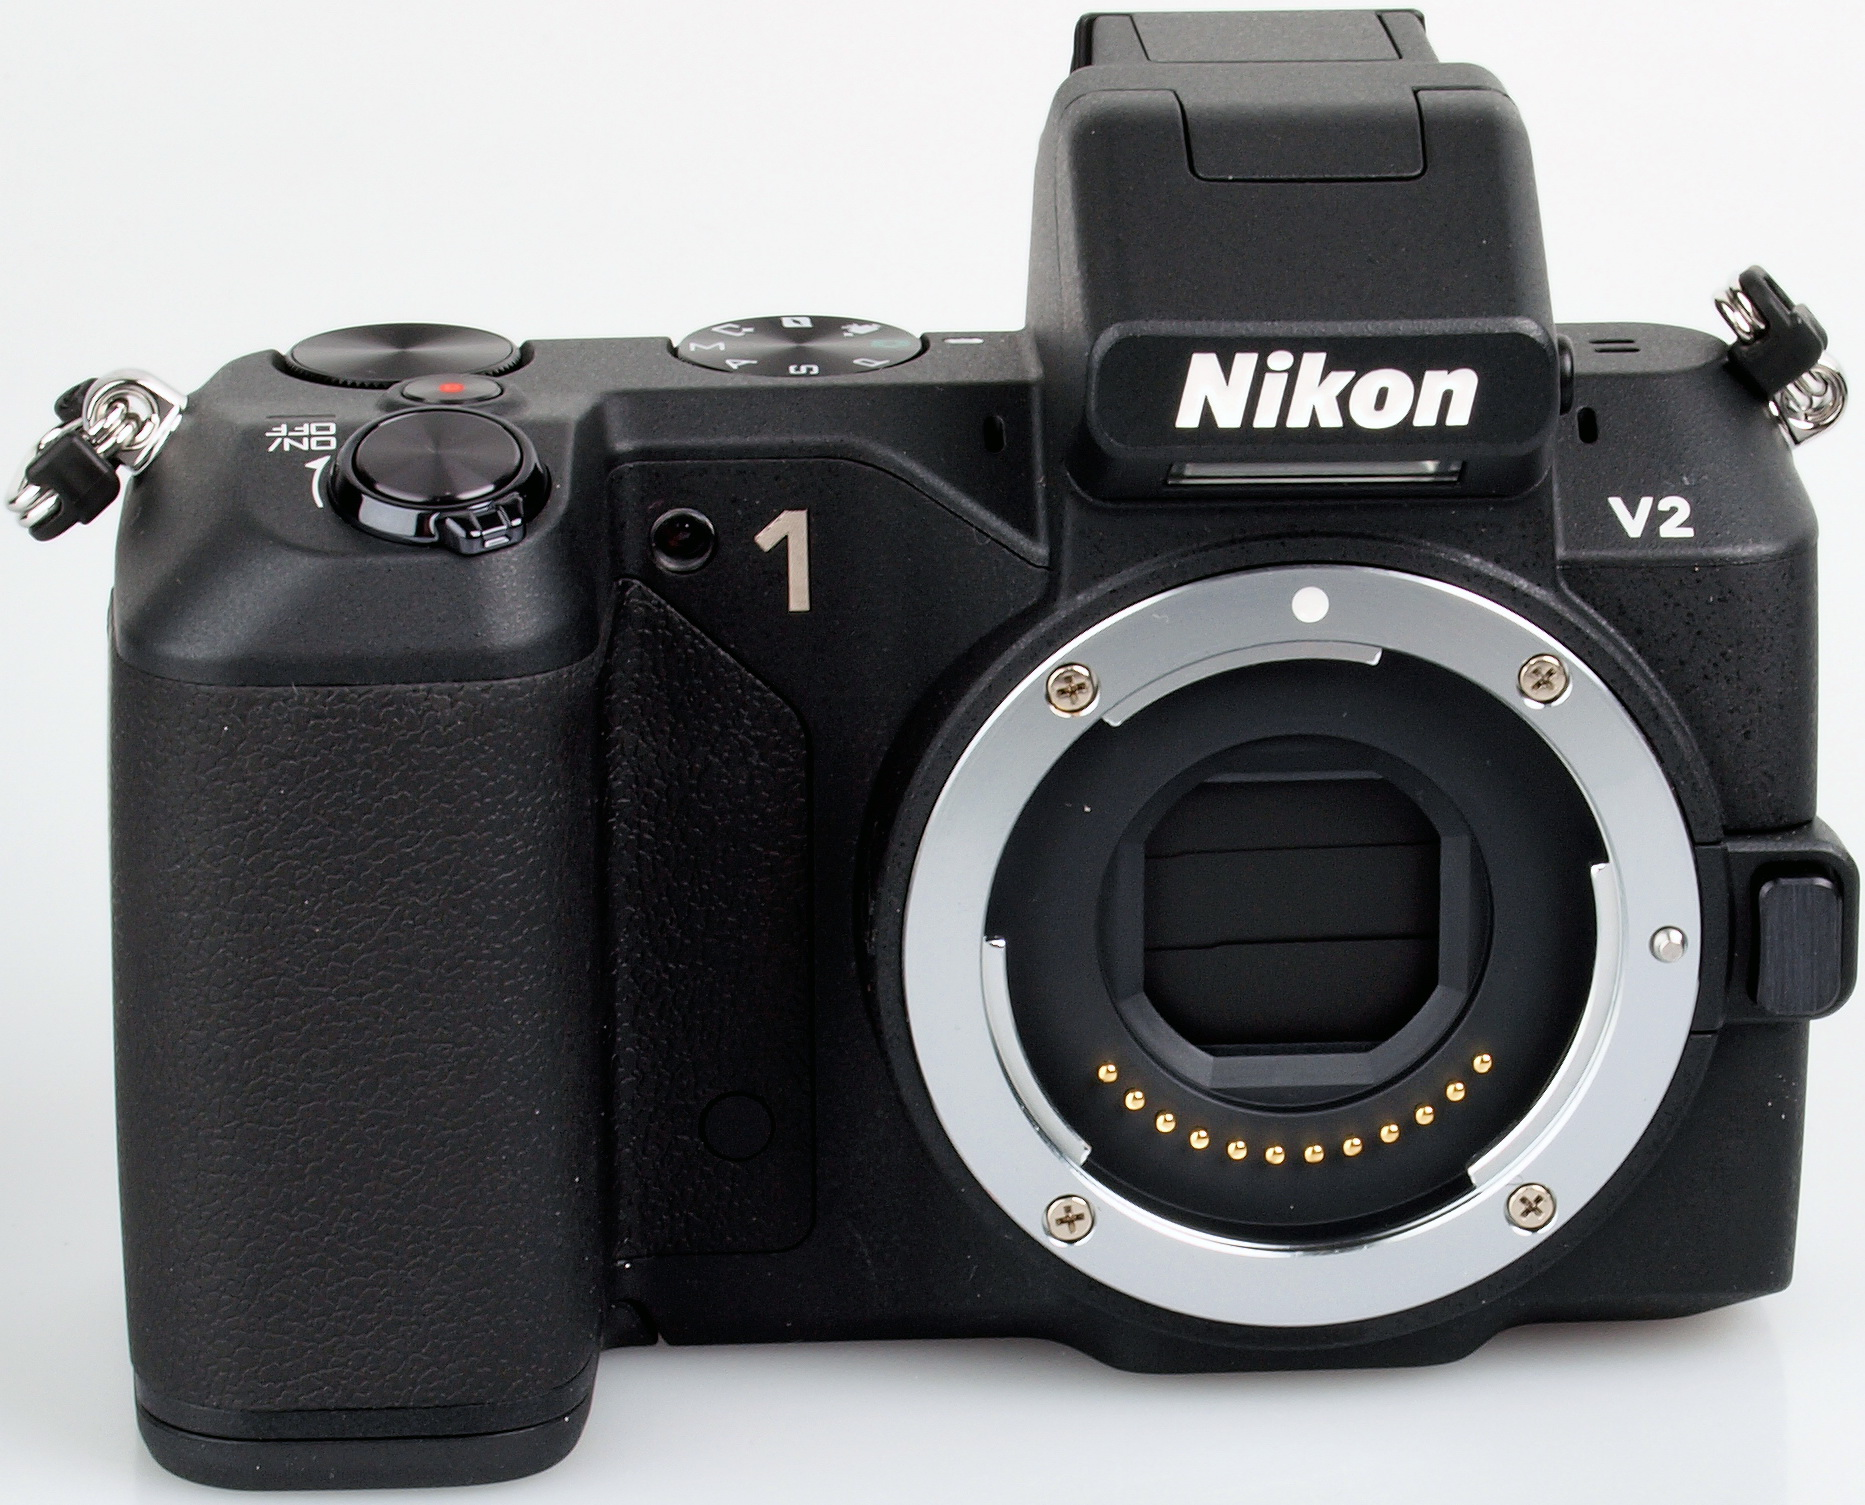 The new V2 mirrorless interchangeable lens camera from Nikon